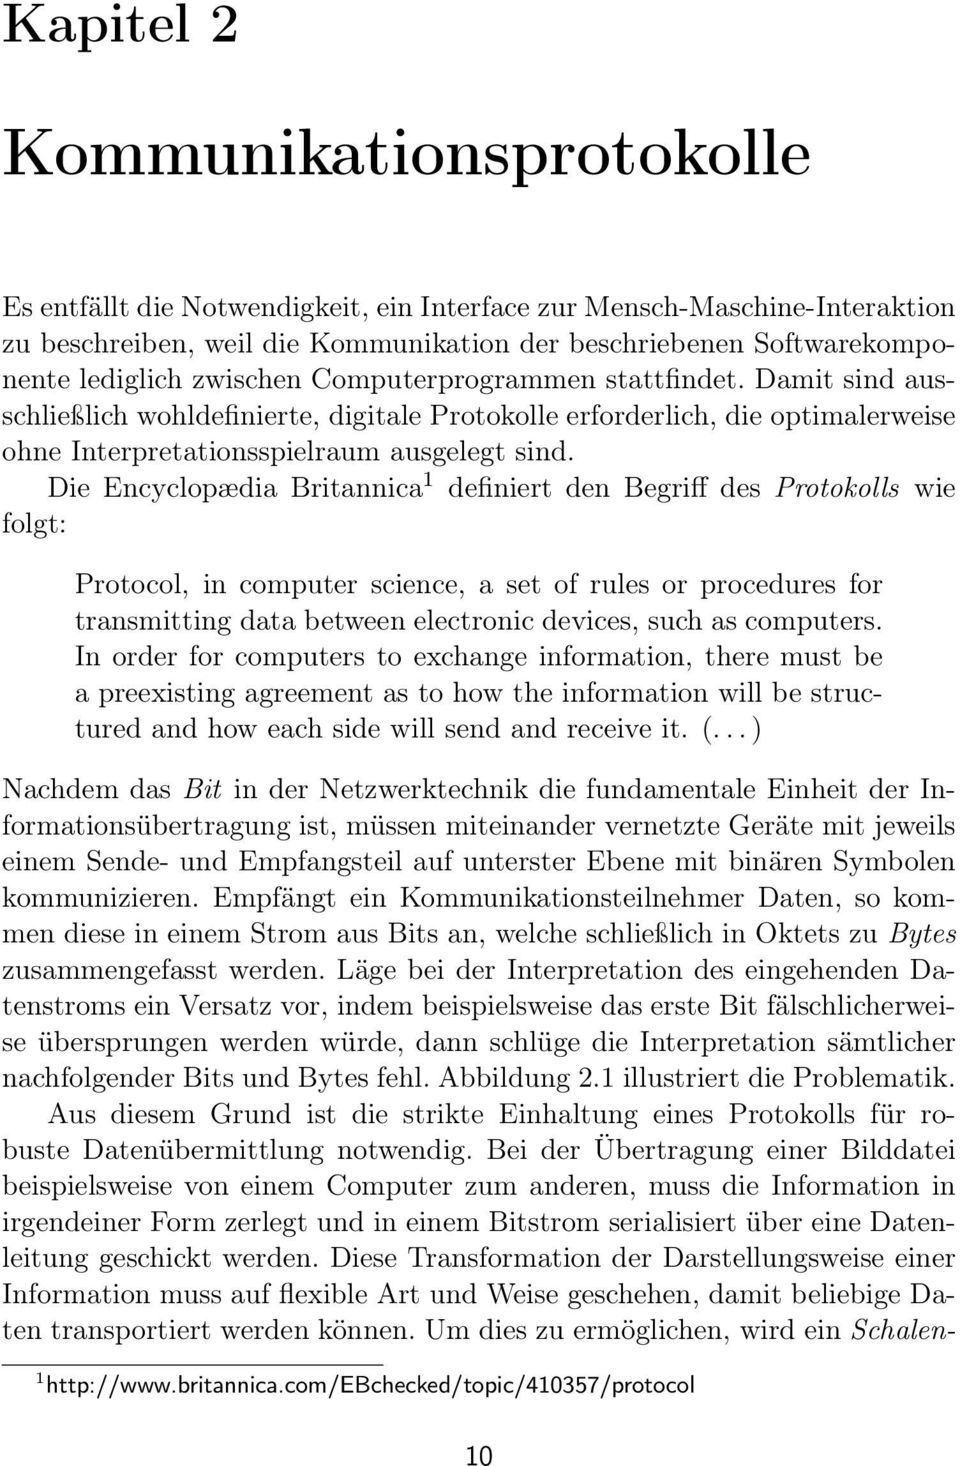 Die Encyclopædia Britannica 1 definiert den Begriff des Protokolls wie folgt: Protocol, in computer science, a set of rules or procedures for transmitting data between electronic devices, such as